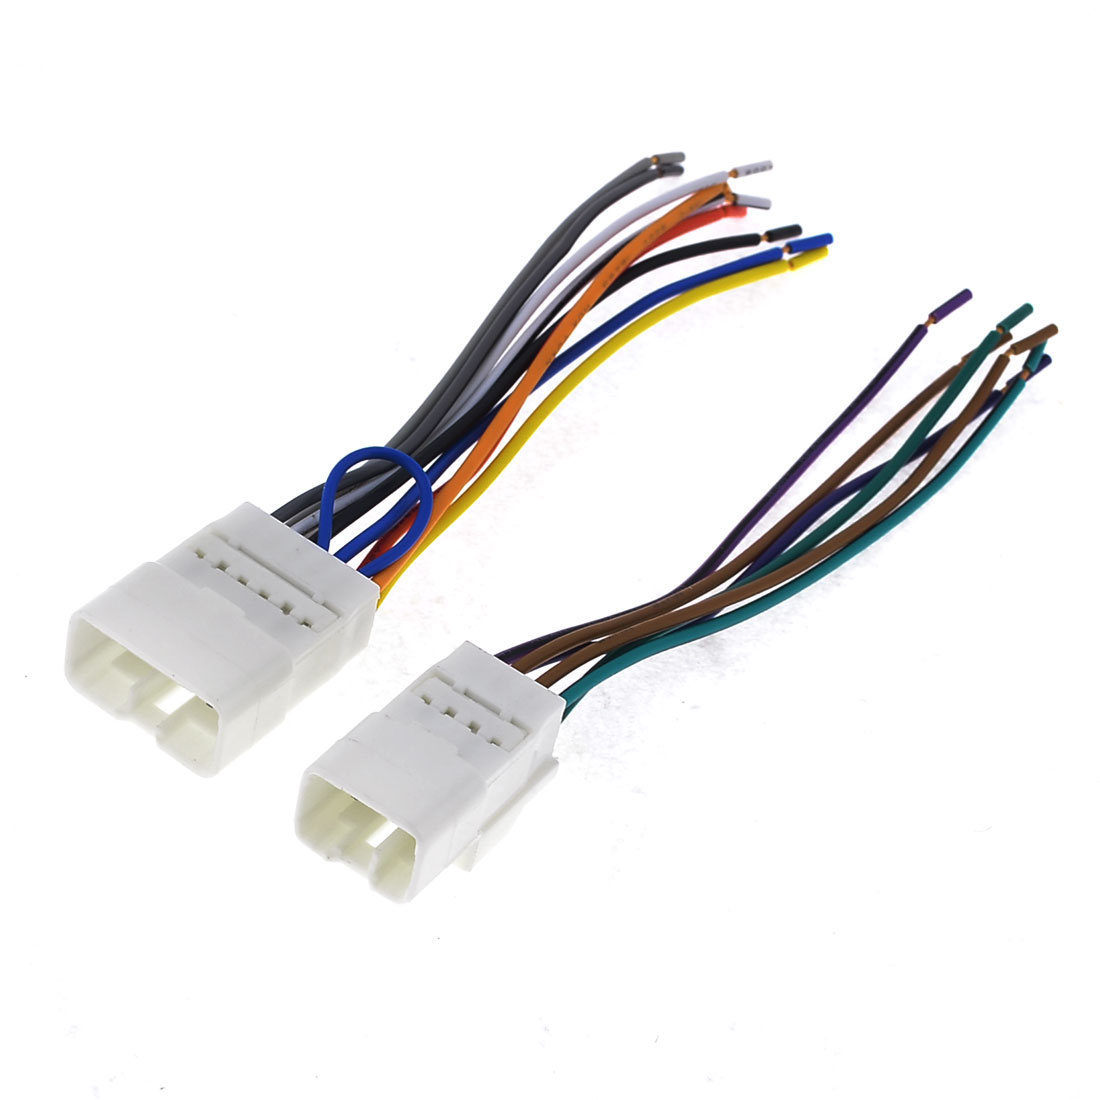 85 Toyota Wiring Harness Library Unique Bargains Vehicle Car Audio Dvd Gps Female Wire Pickup